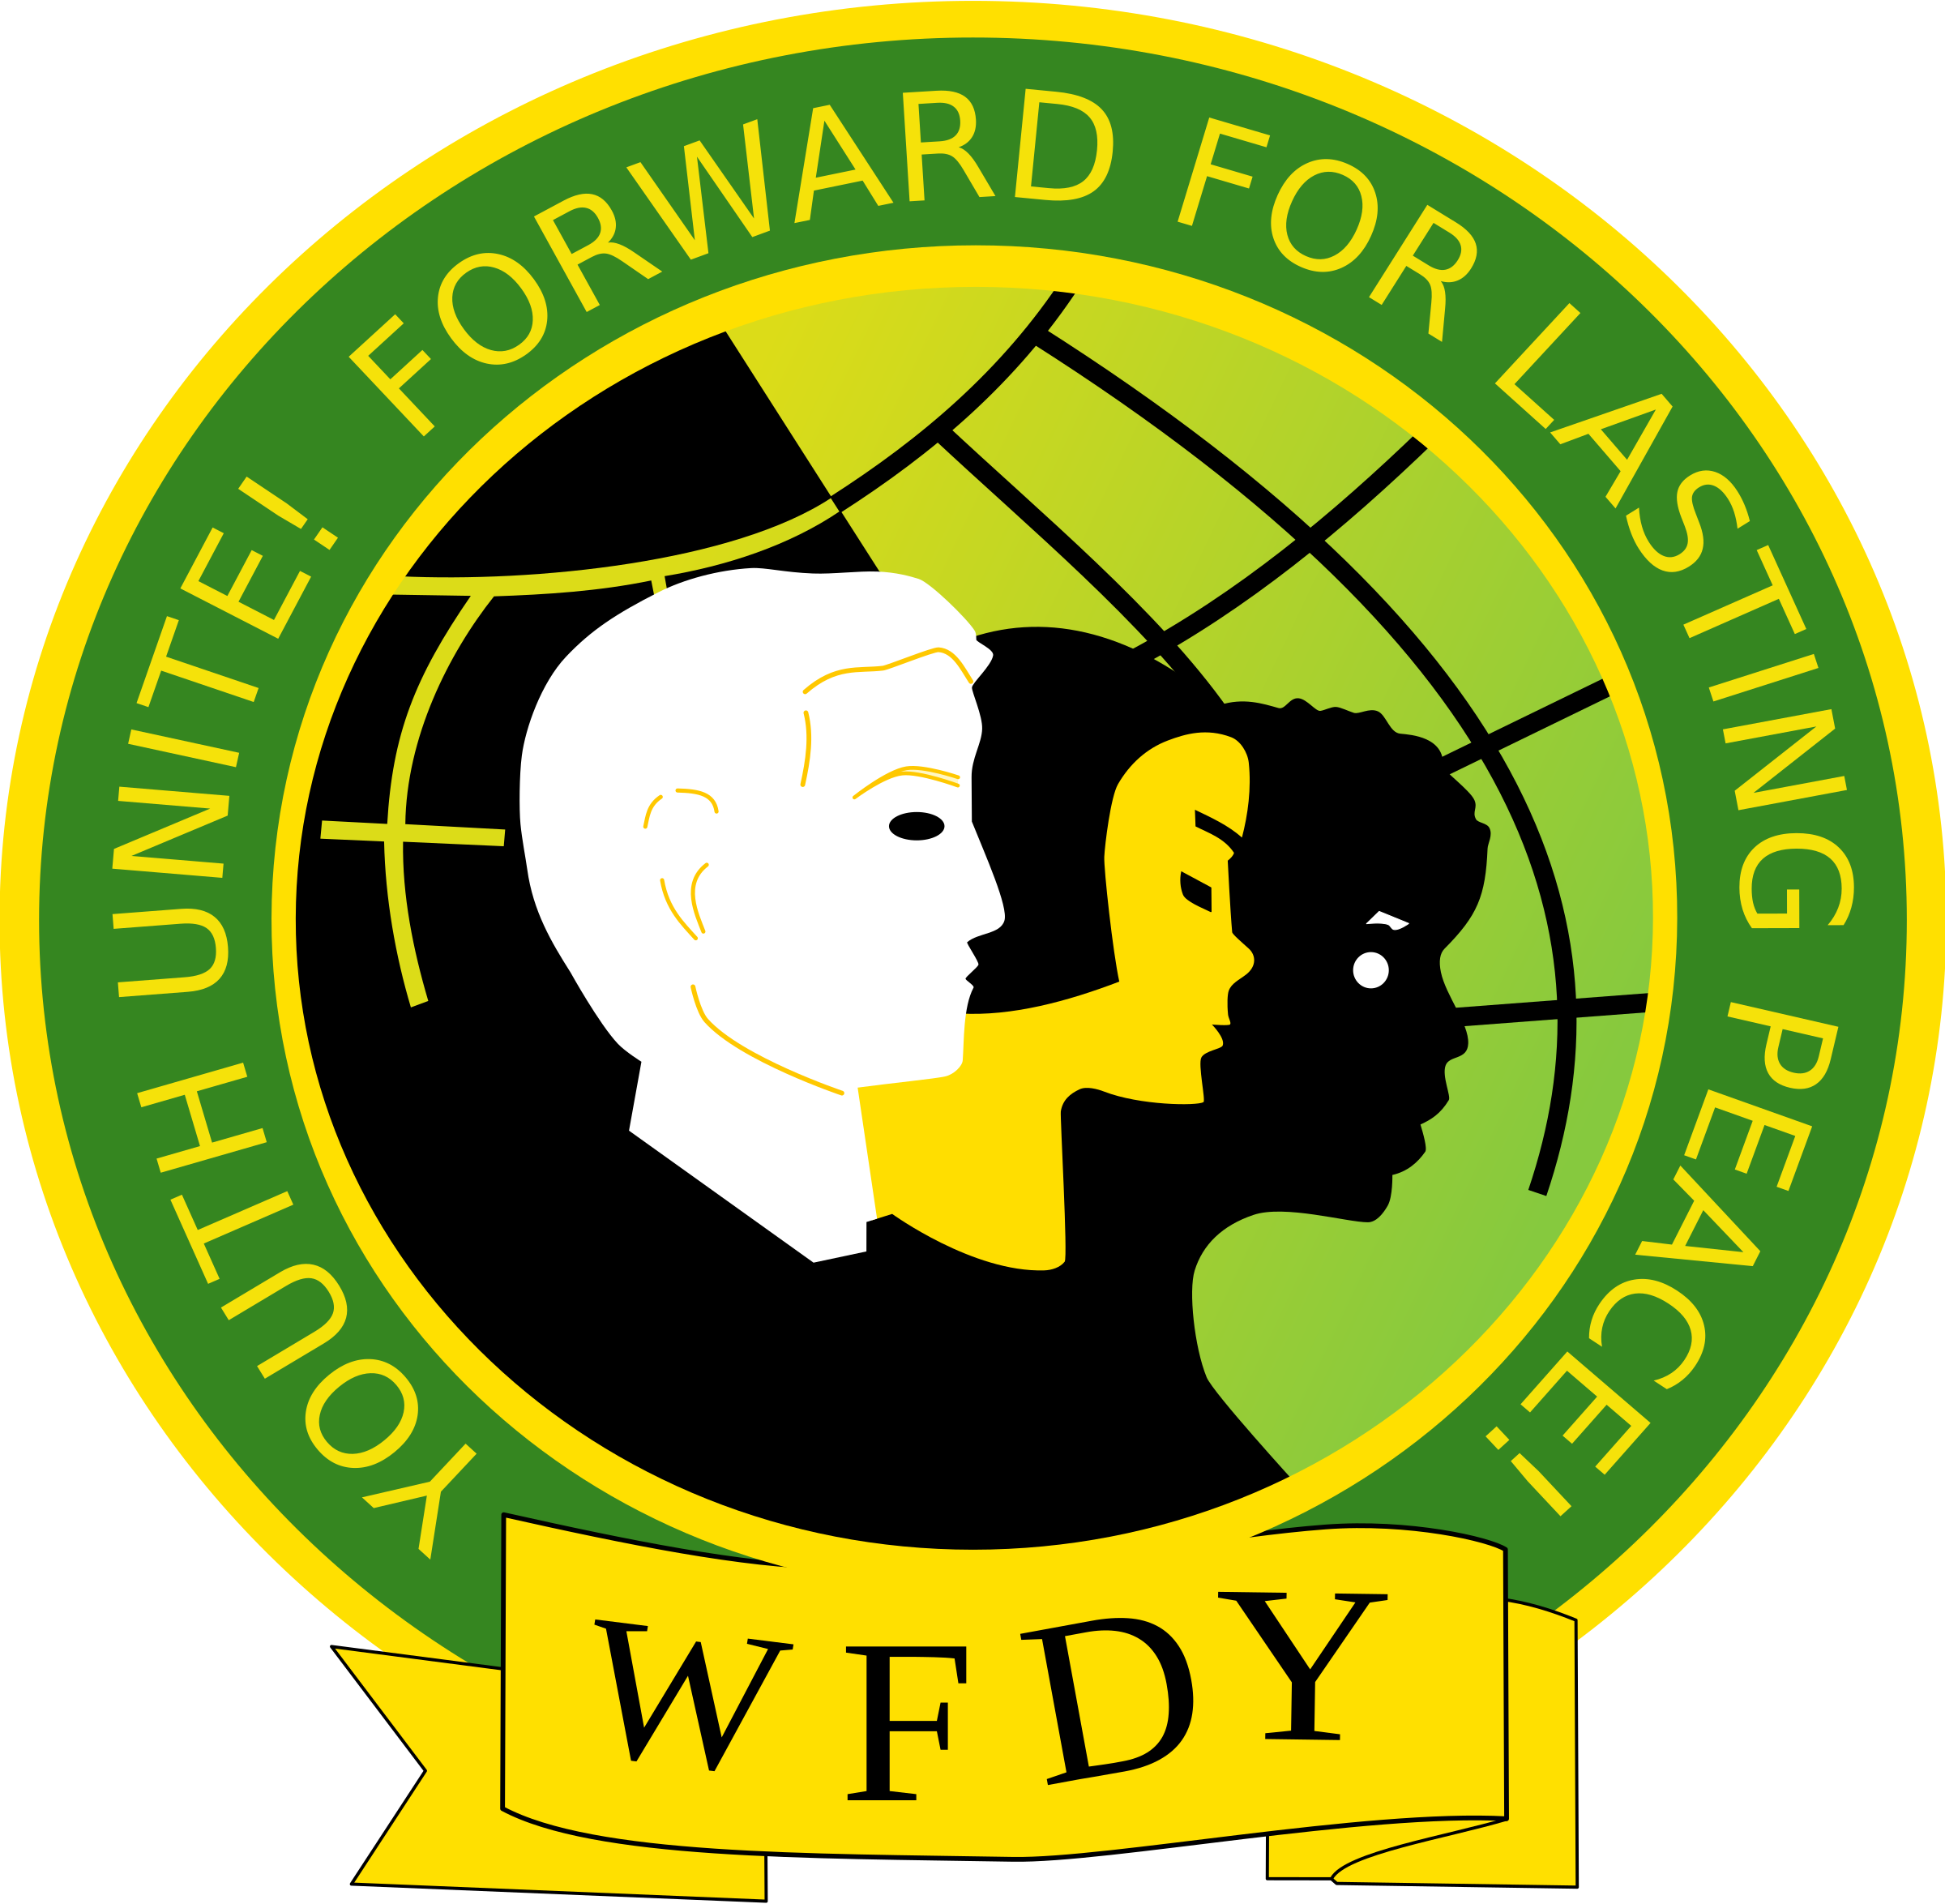 World Federation of Democratic Youth by clagnar